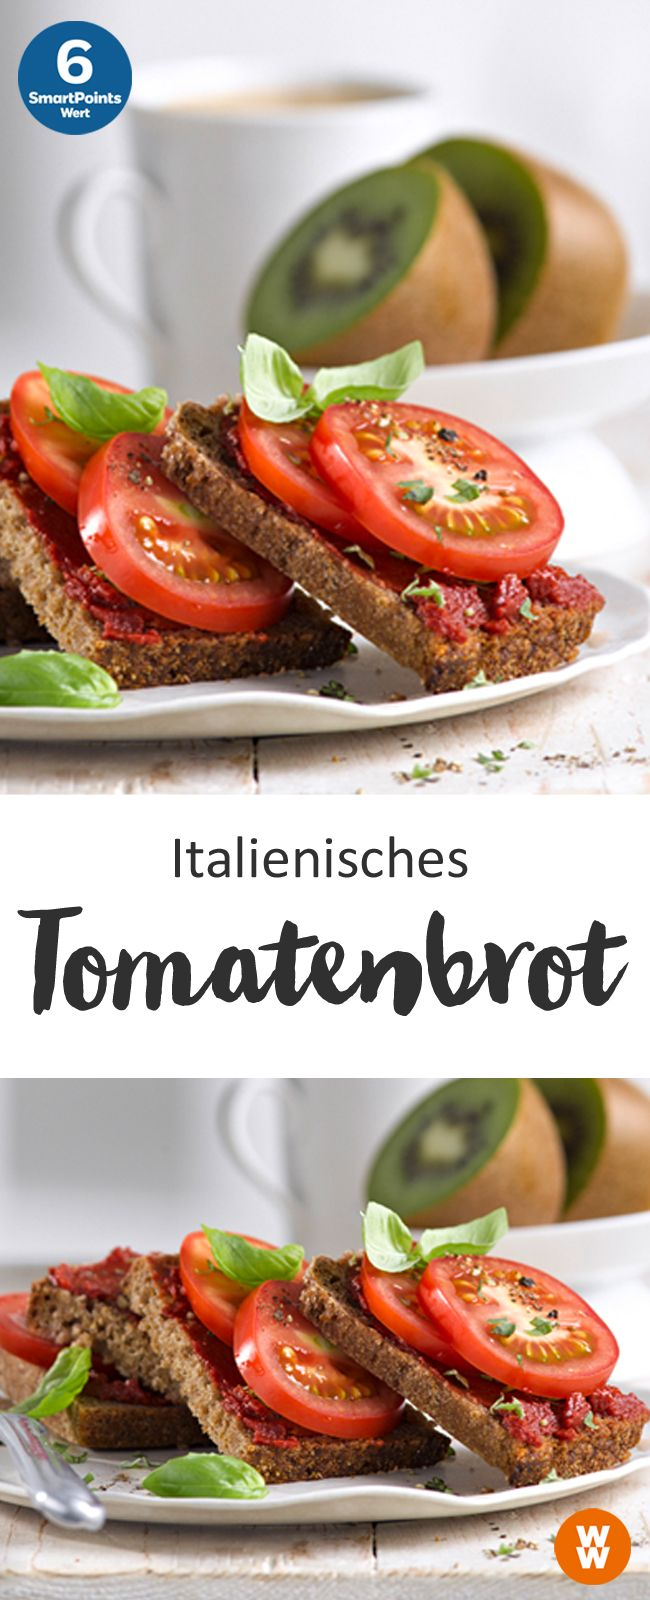 italienisches tomatenbrot rezept fr hst cksideen pinterest tomatenbrot italienisch und. Black Bedroom Furniture Sets. Home Design Ideas